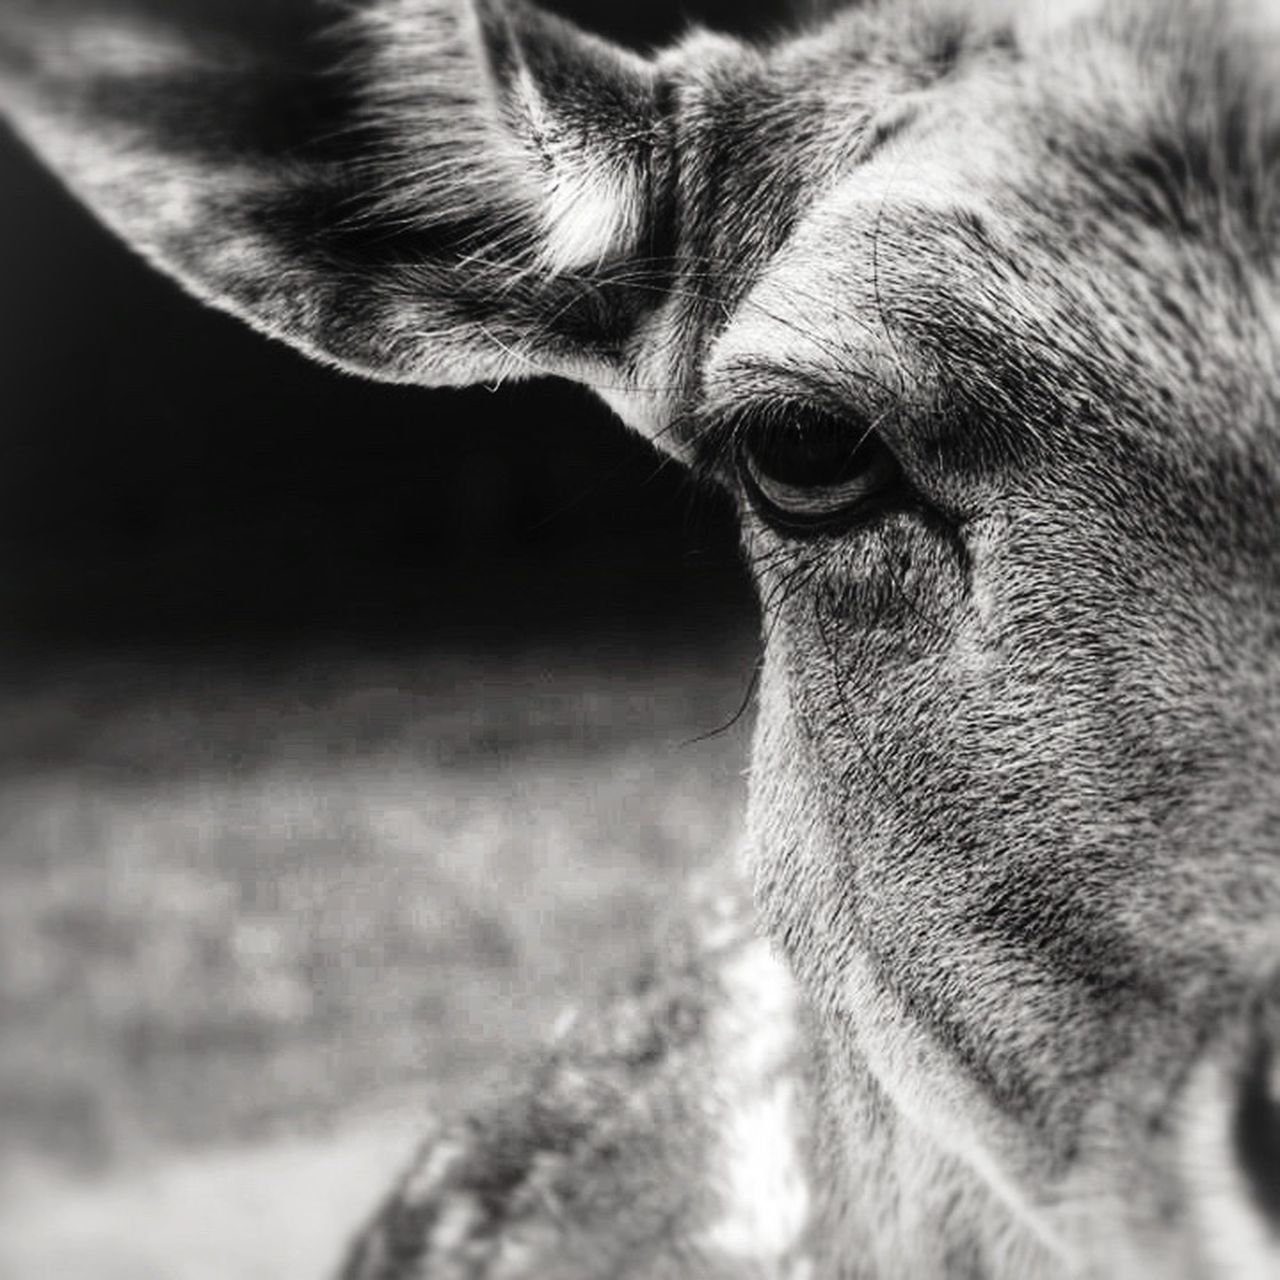 """""""The souls of many others have touched my soul, and not all were other people."""" ~ A.D. Williams ❤️ EyeEm Nature Lover EyeEm Best Shots EyeEm Canon Streamzoofamily Tadaa Community The EyeEm Facebook Cover Challenge Beingaware EyeEm Best Shots - Black + White Bnw"""